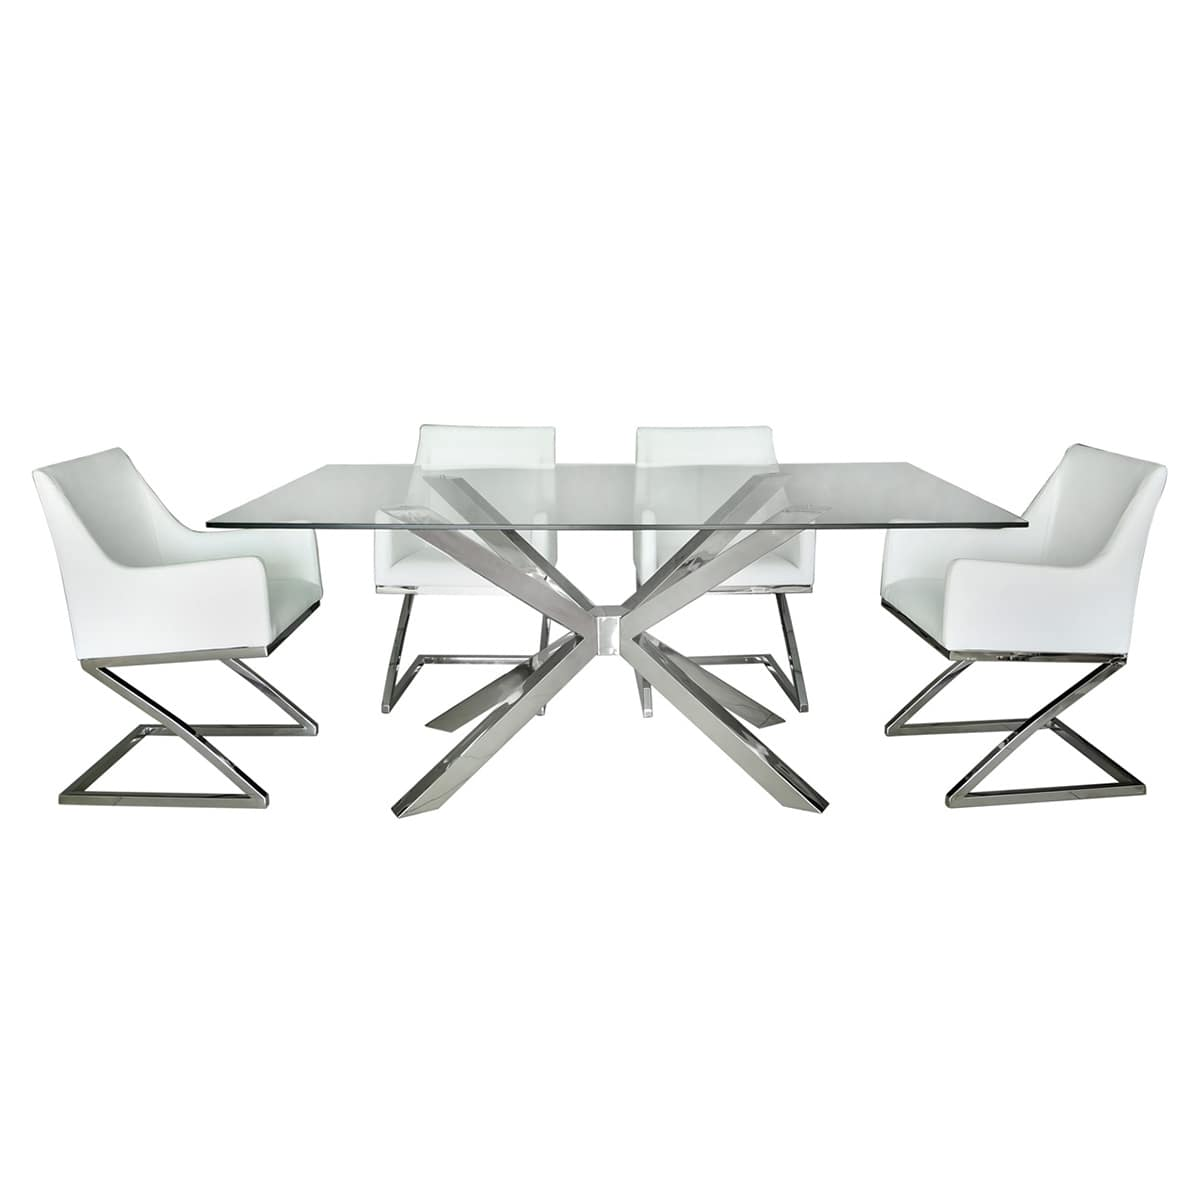 Astro Glass and Chrome Dining Table with Four White Chairs